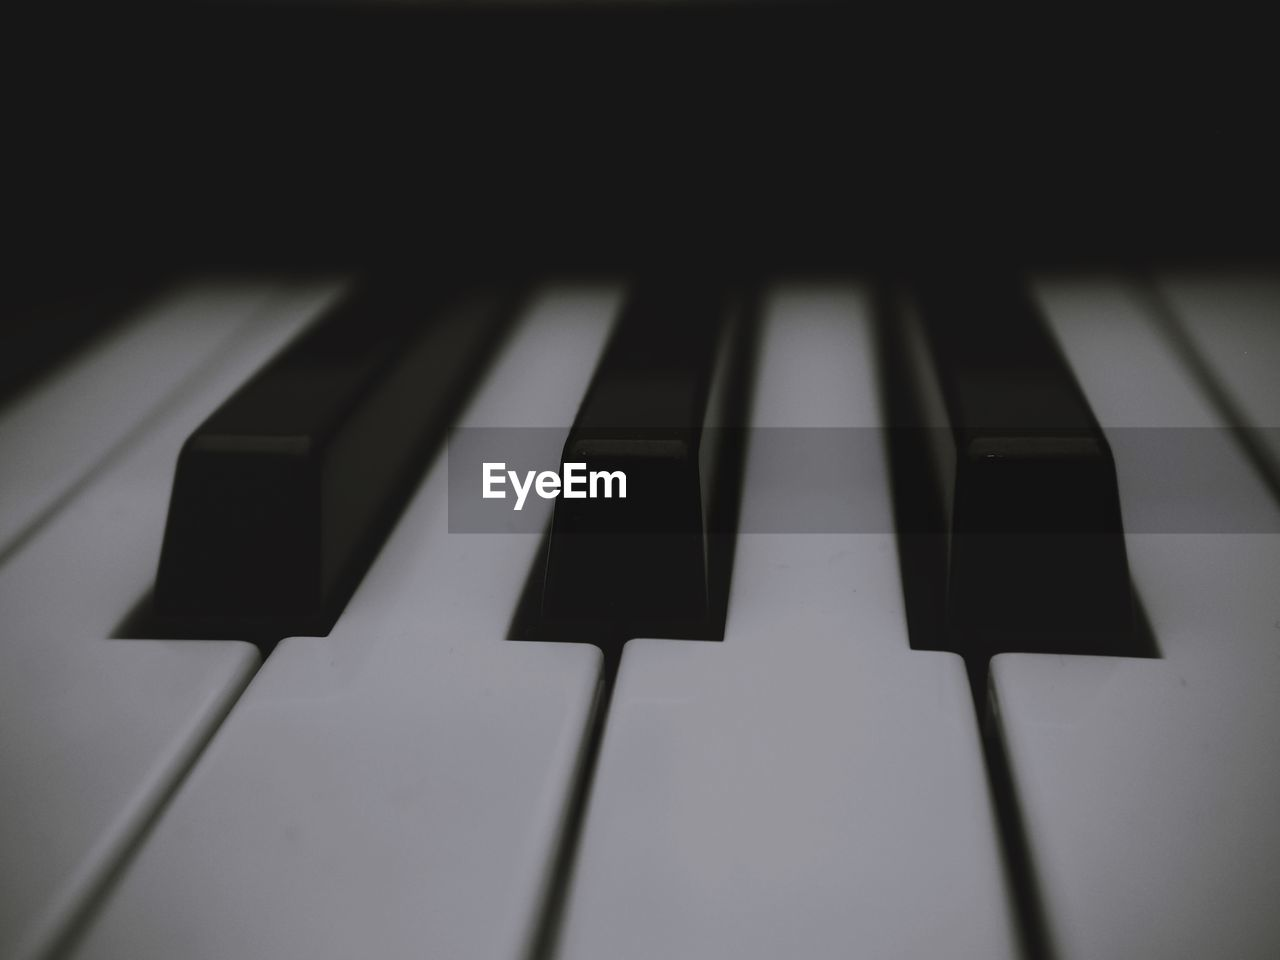 musical equipment, music, musical instrument, piano, piano key, arts culture and entertainment, close-up, no people, indoors, black color, white color, keyboard instrument, full frame, backgrounds, keyboard, pattern, high angle view, focus on foreground, selective focus, shadow